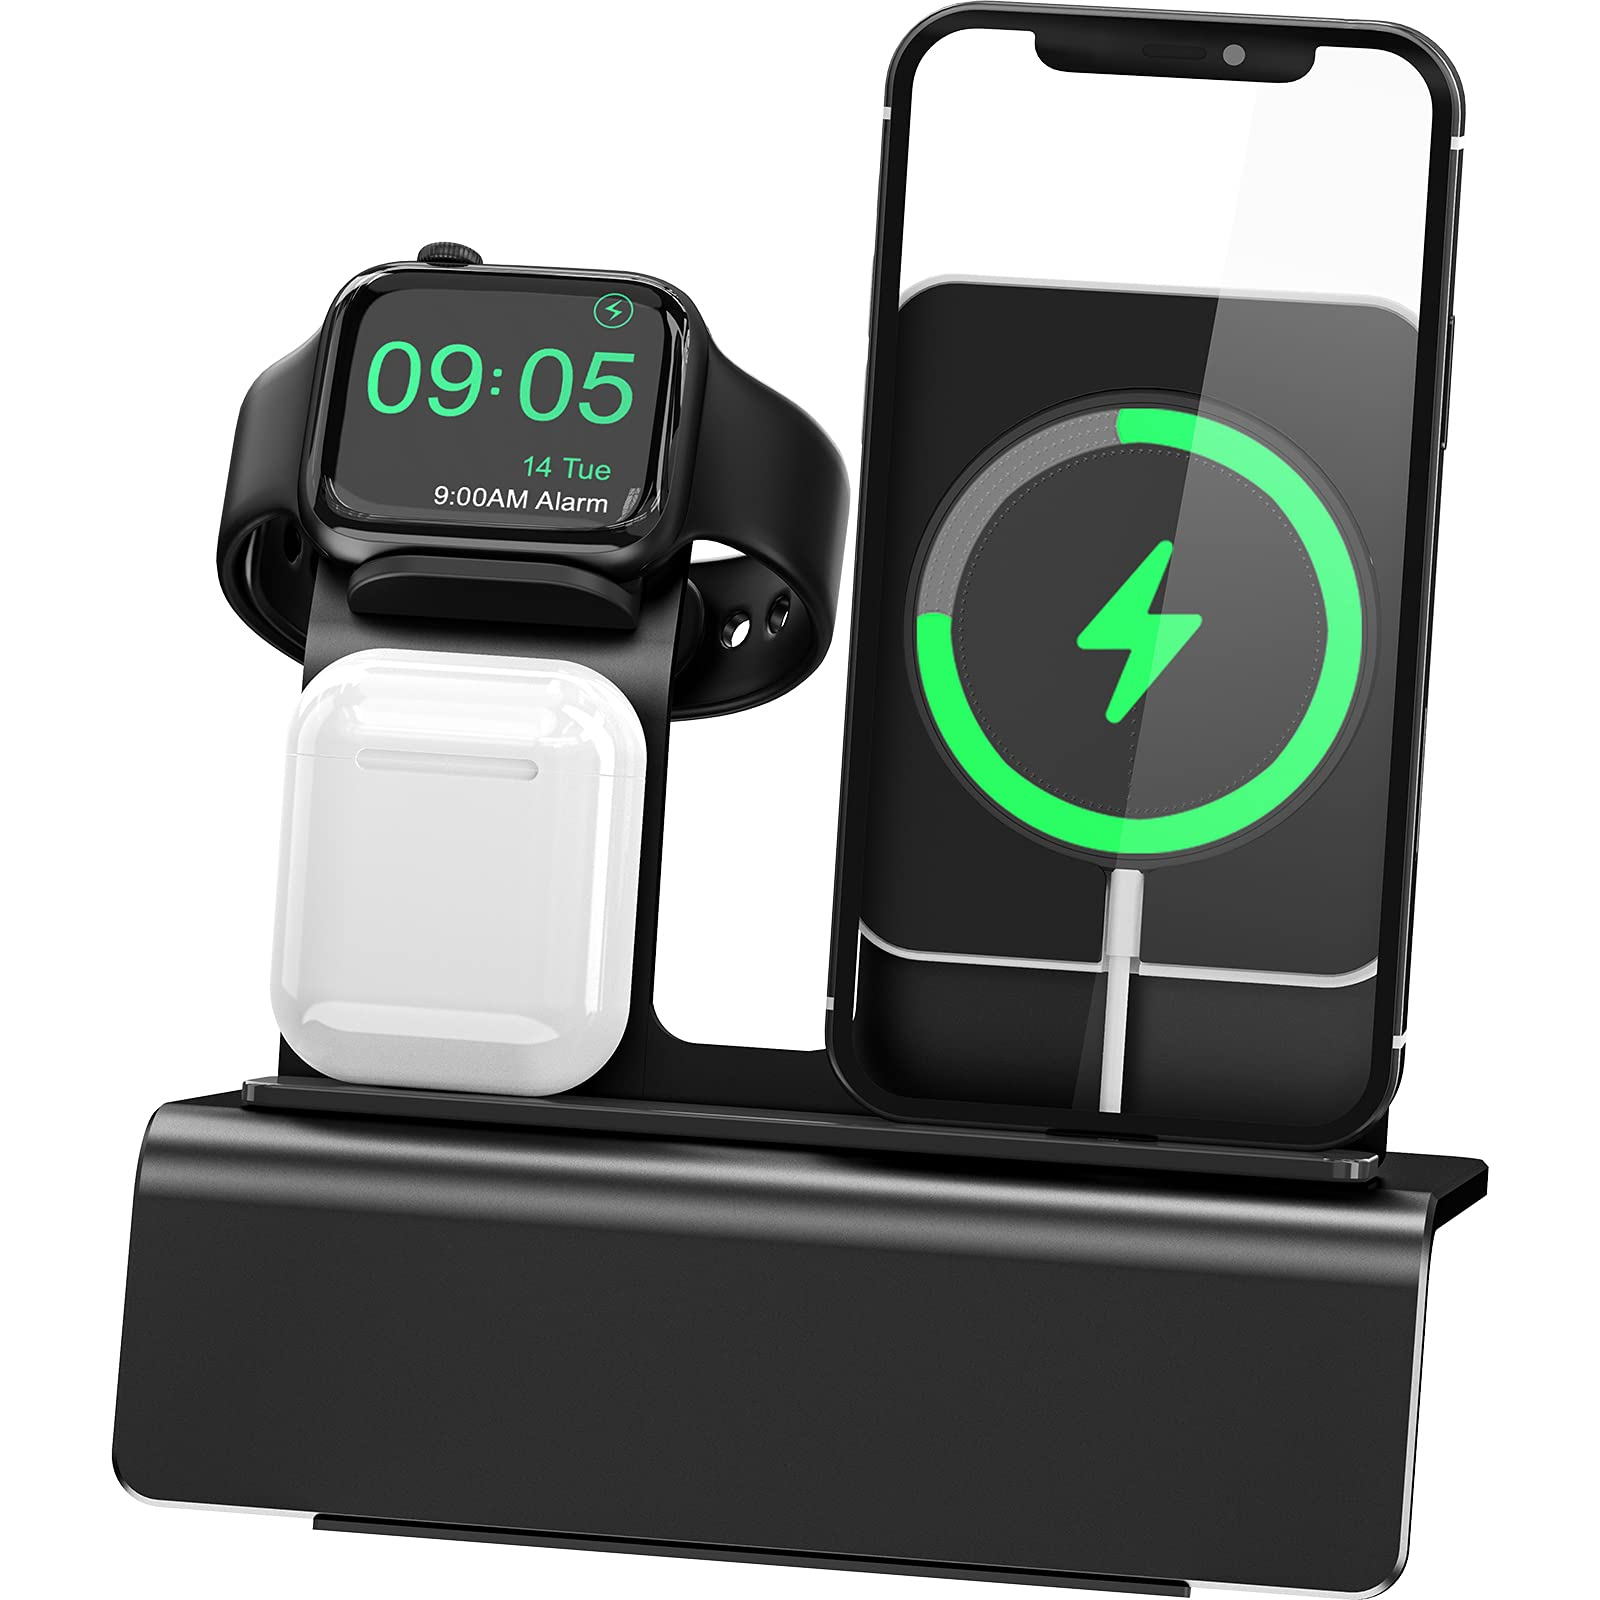 Yestan Wireless Charger Stand Compatible with Magsafe Charger Phone 12 Pro Max